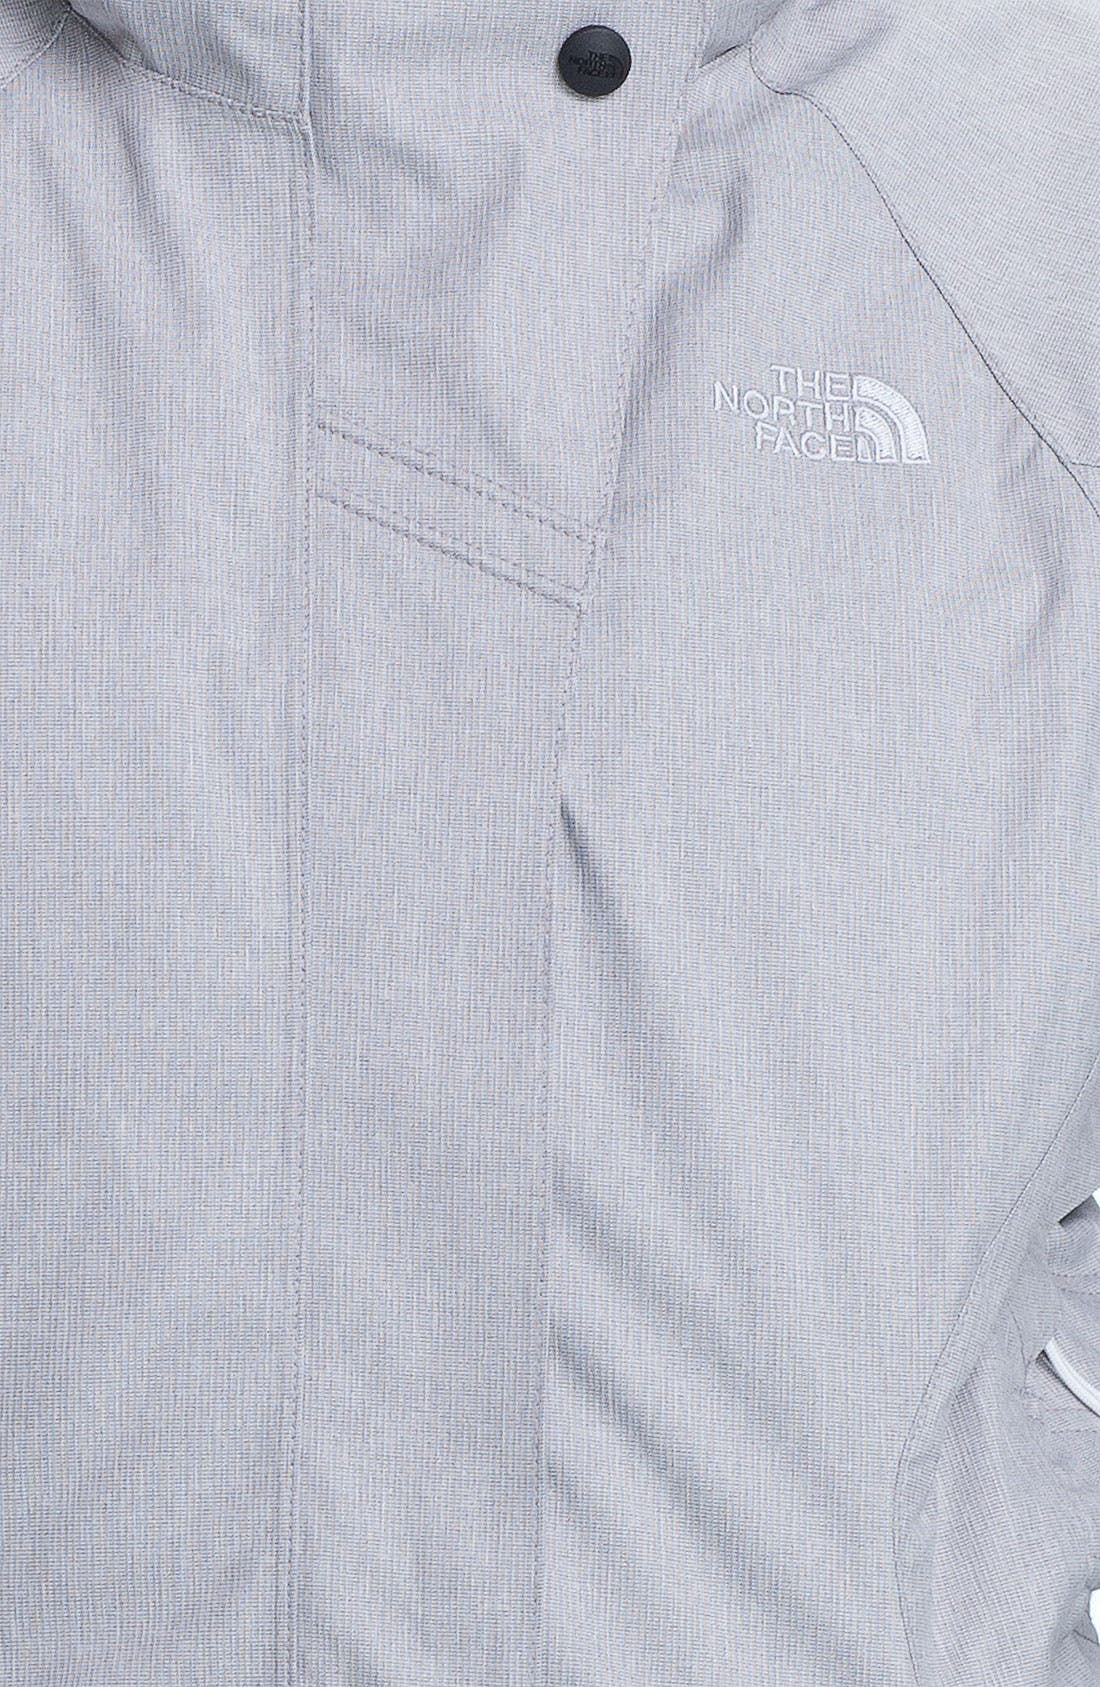 Alternate Image 3  - The North Face 'Aphelion' TriClimate® 3-in-1 Jacket